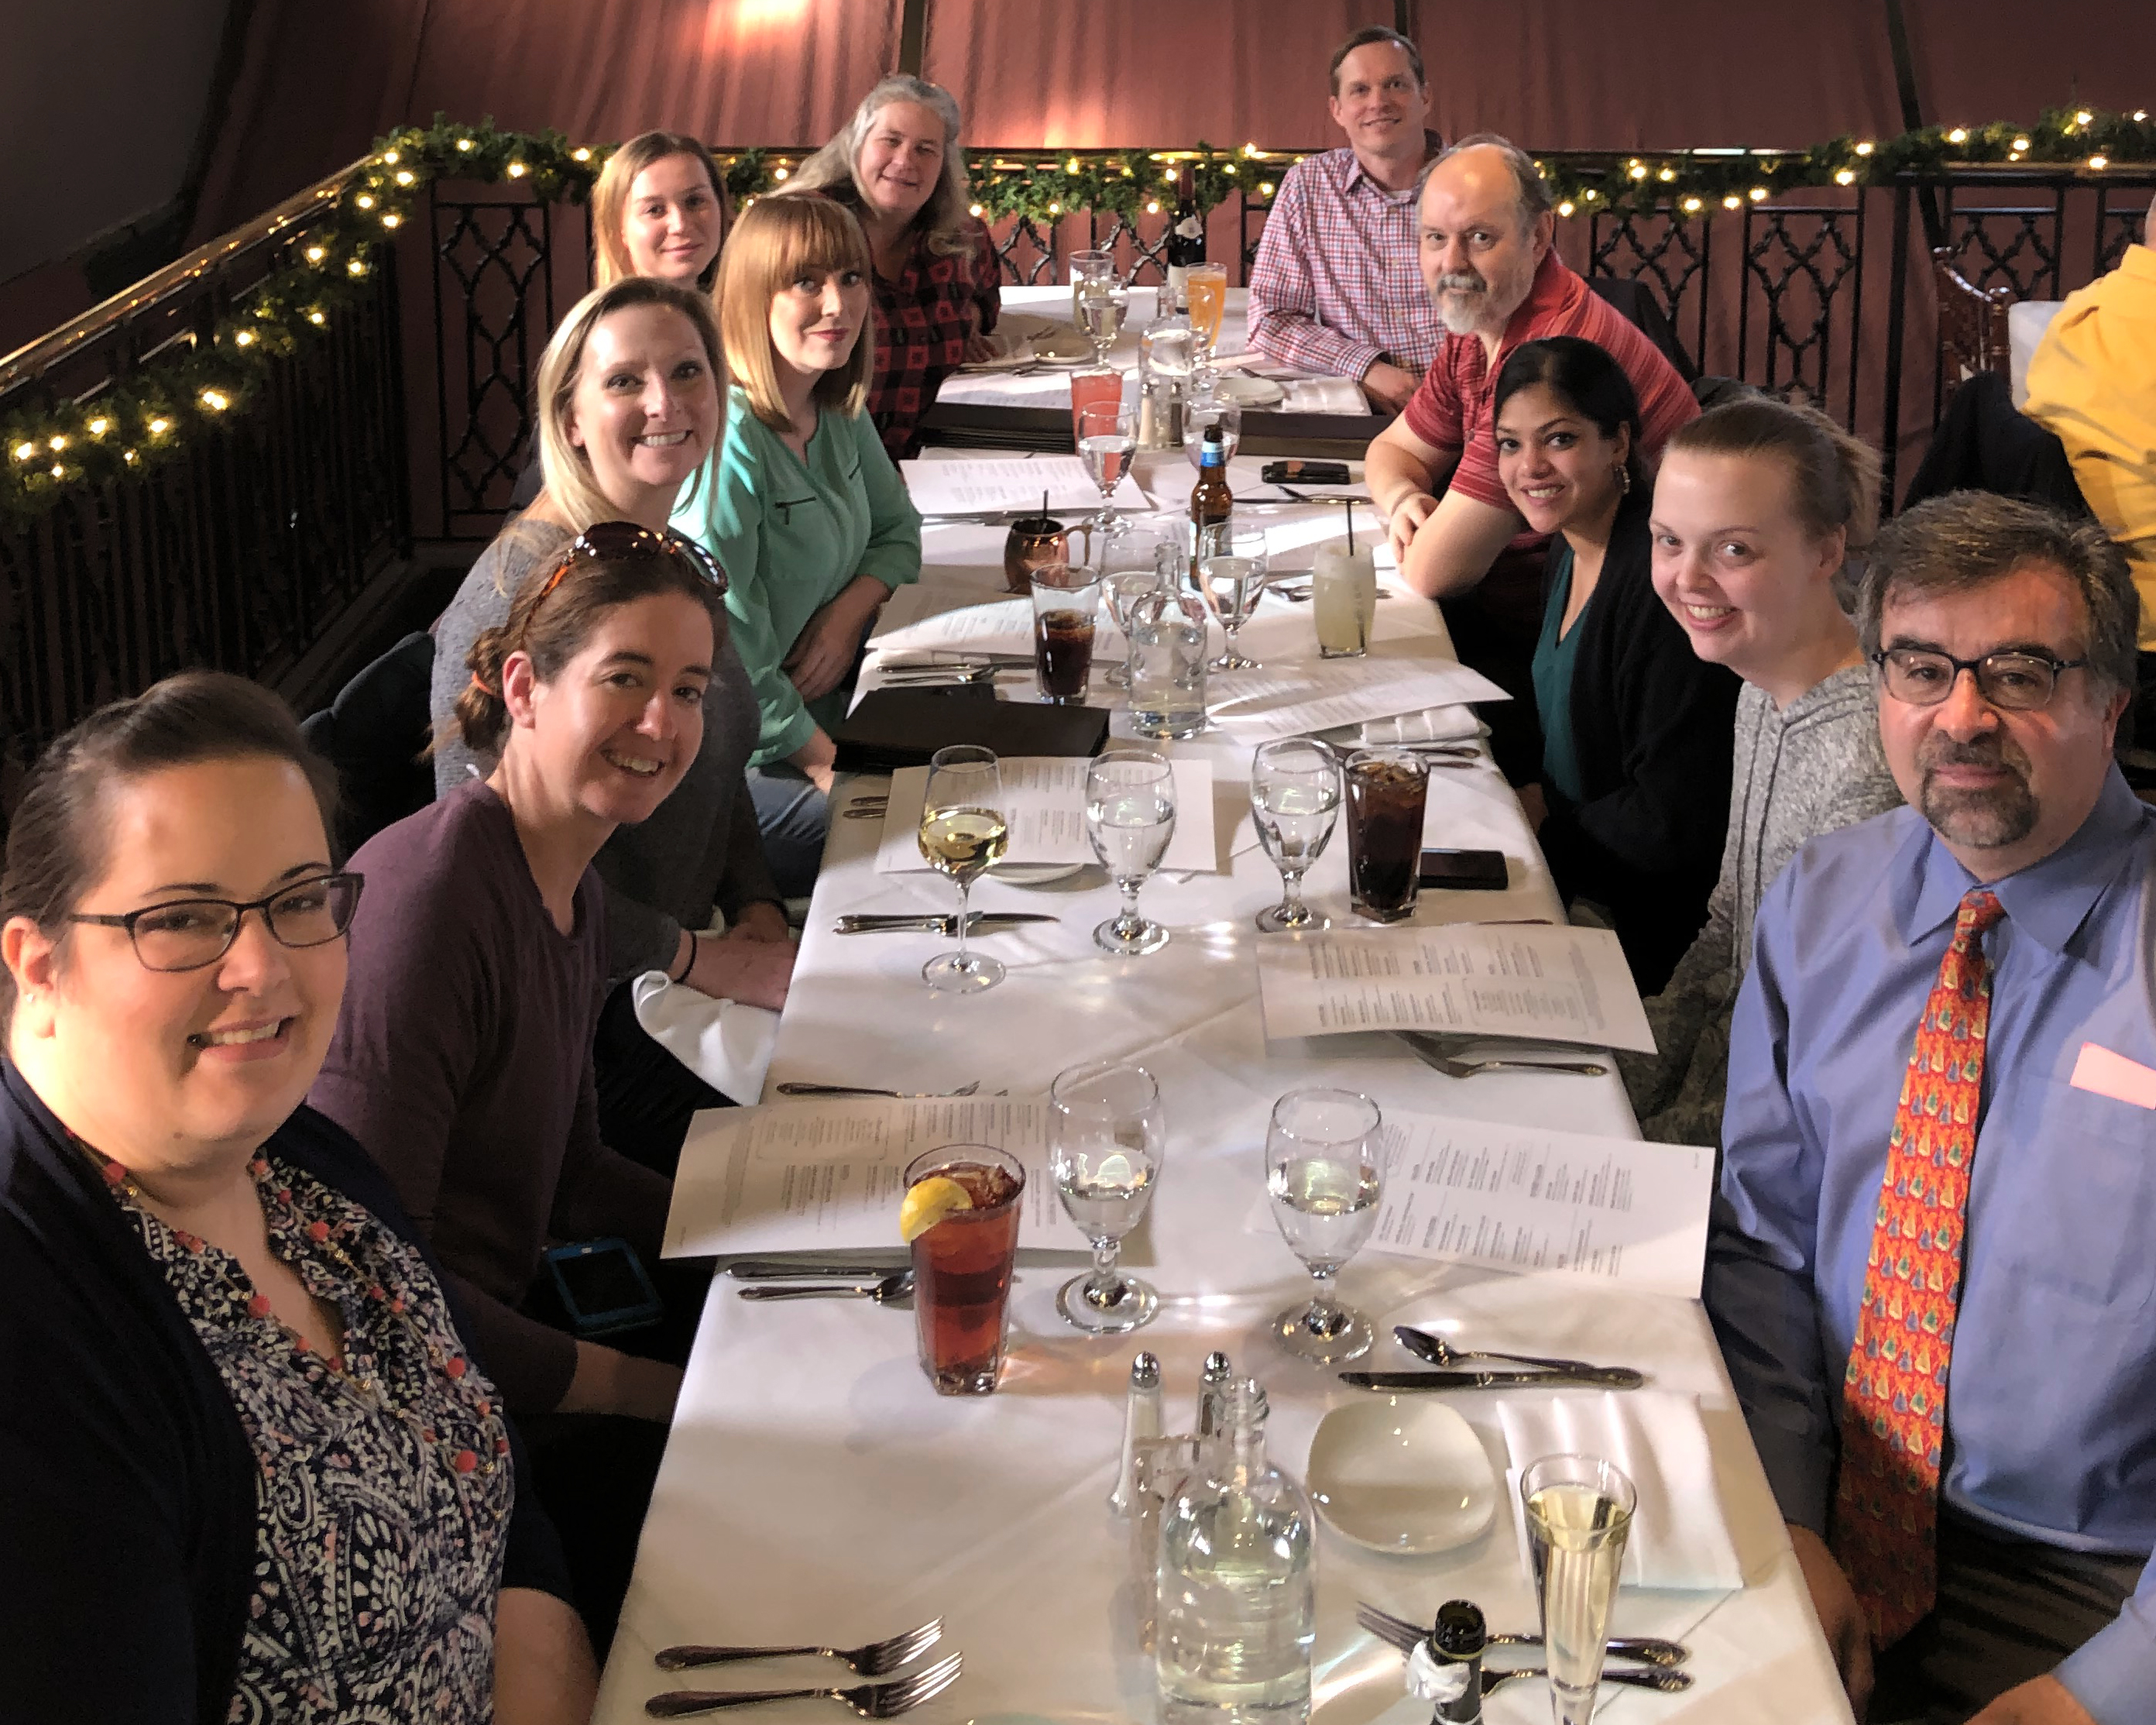 The team from the Research Histology Lab enjoys time together off-campus.